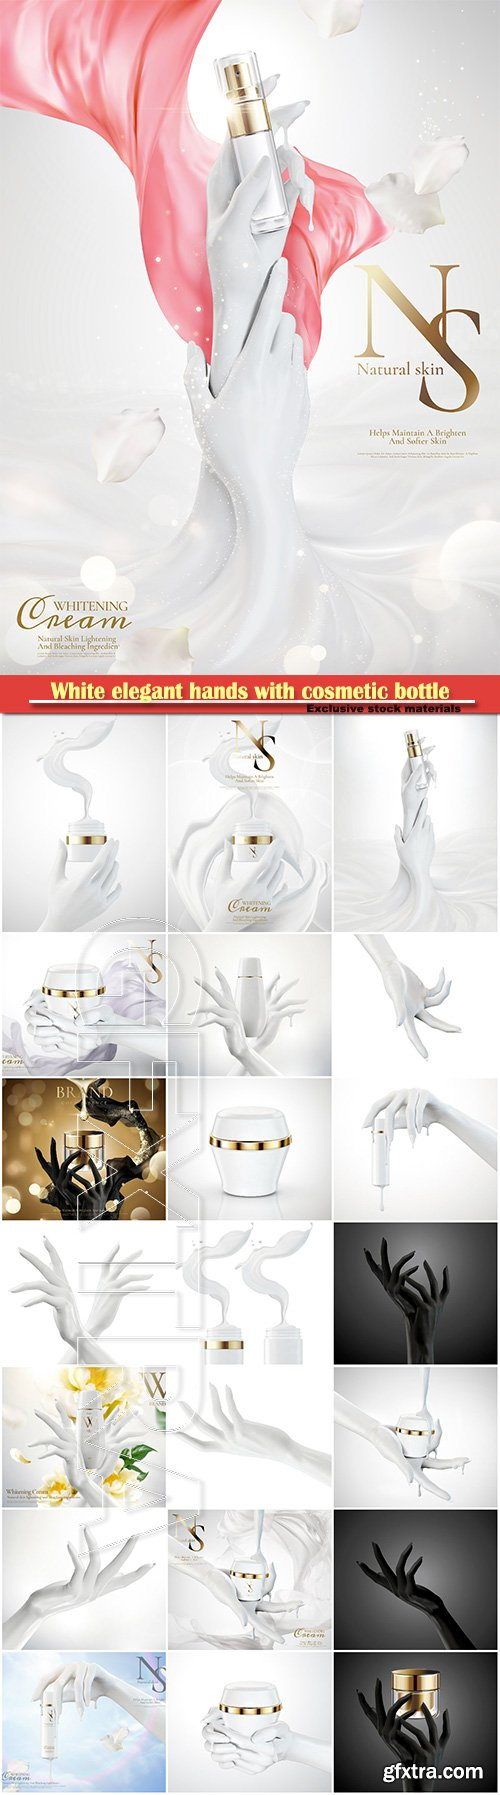 White elegant hands with cosmetic bottle in 3d illustration